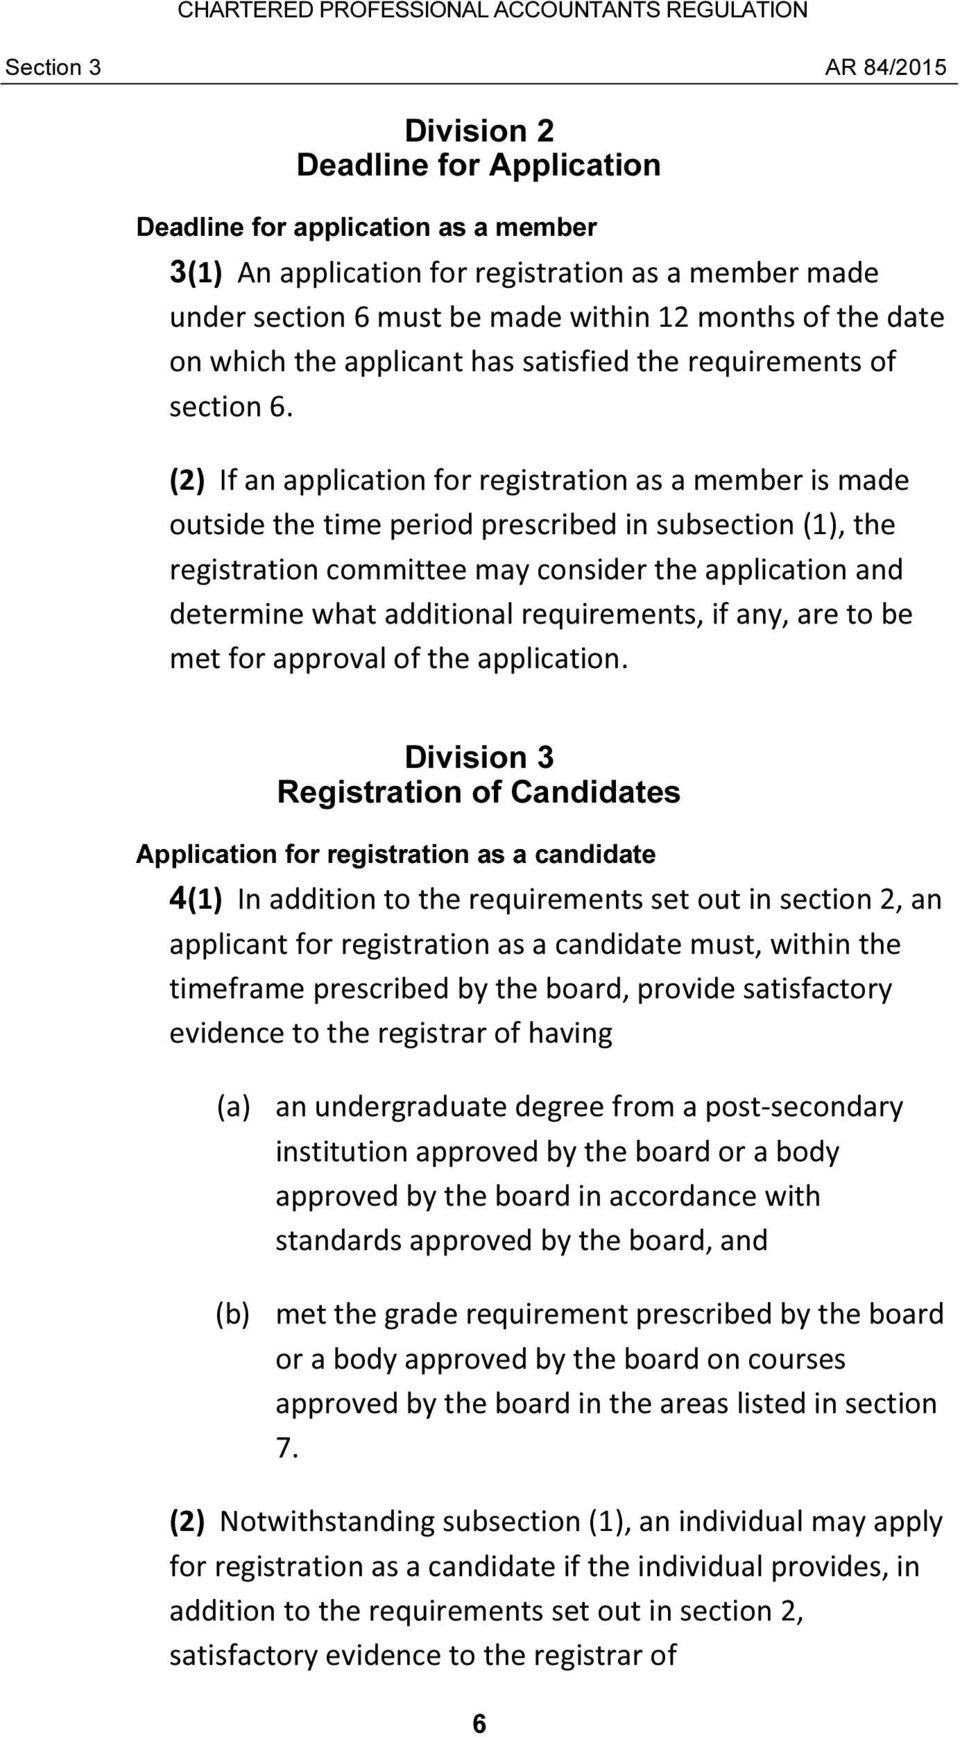 (2) If an application for registration as a member is made outside the time period prescribed in subsection (1), the registration committee may consider the application and determine what additional